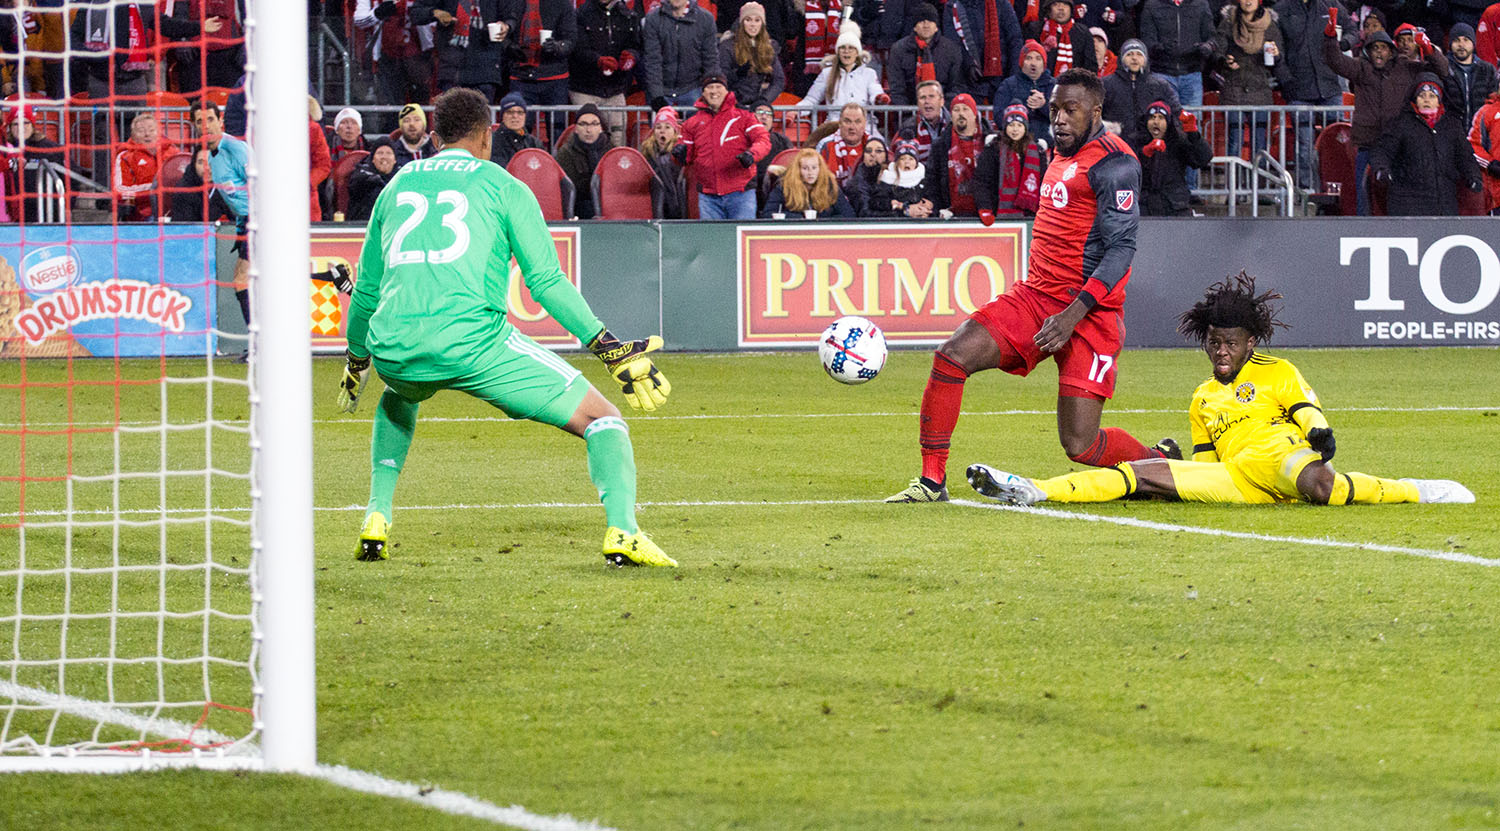 Jozy Altidore scoring the game winning goal for Toronto FC during the 2017 Eastern Conference Playoffs.Image by Dennis Marciniak of denMAR Media.